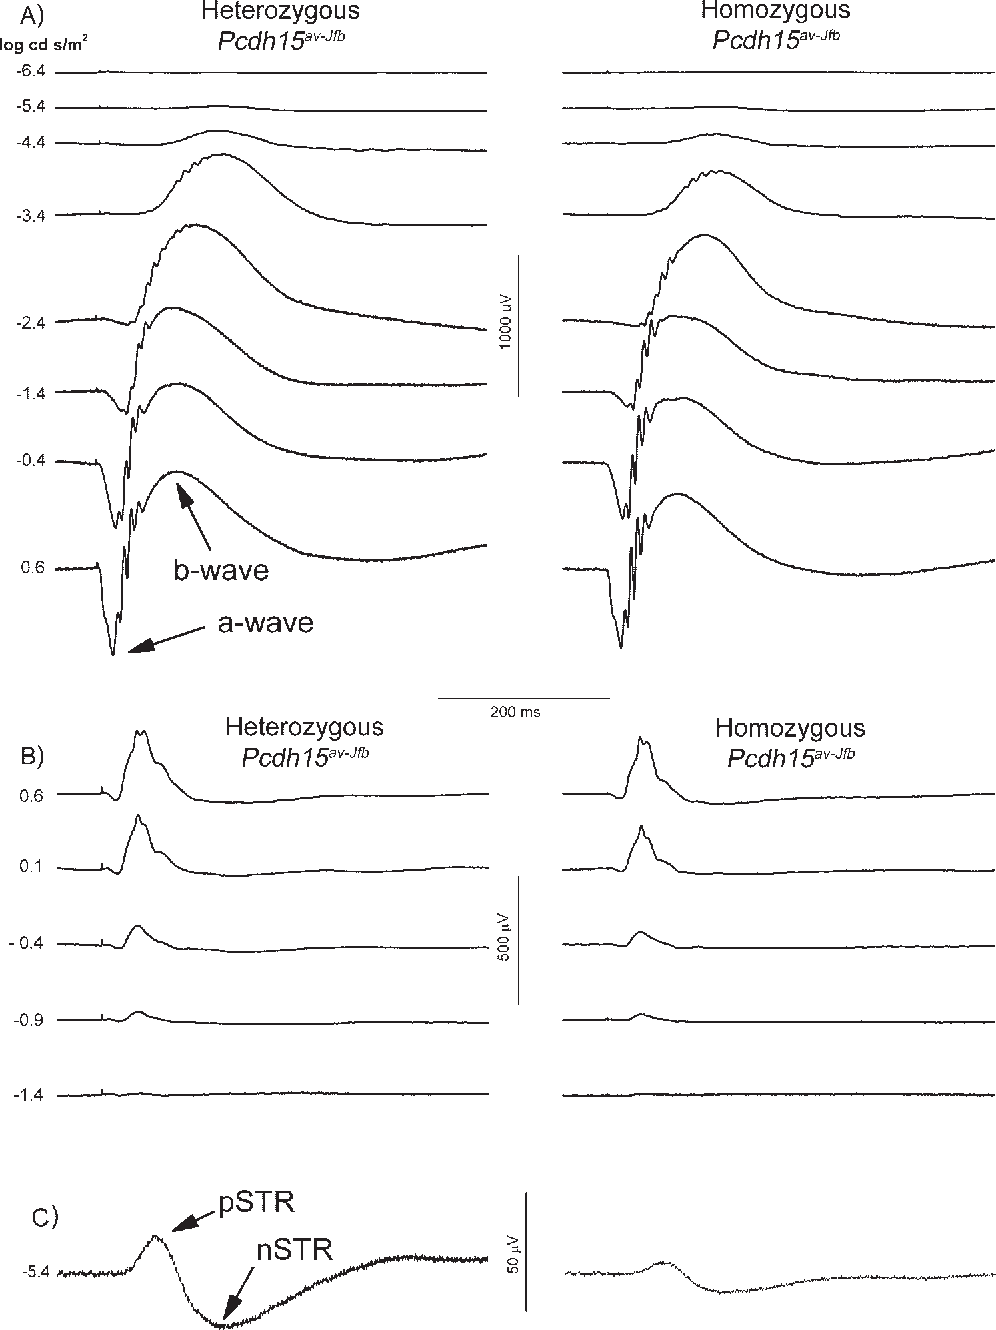 FIGURE 4. Electroretinogram (ERG) waveforms recorded from a representative heterozygote and homozygous Pcdh15av-Jfb 5-week-old mouse. (A) Scotopic response; (B) photopic response; (C) STR from averaged traces (n 3, 4) at 5.4 log cd s/m2.